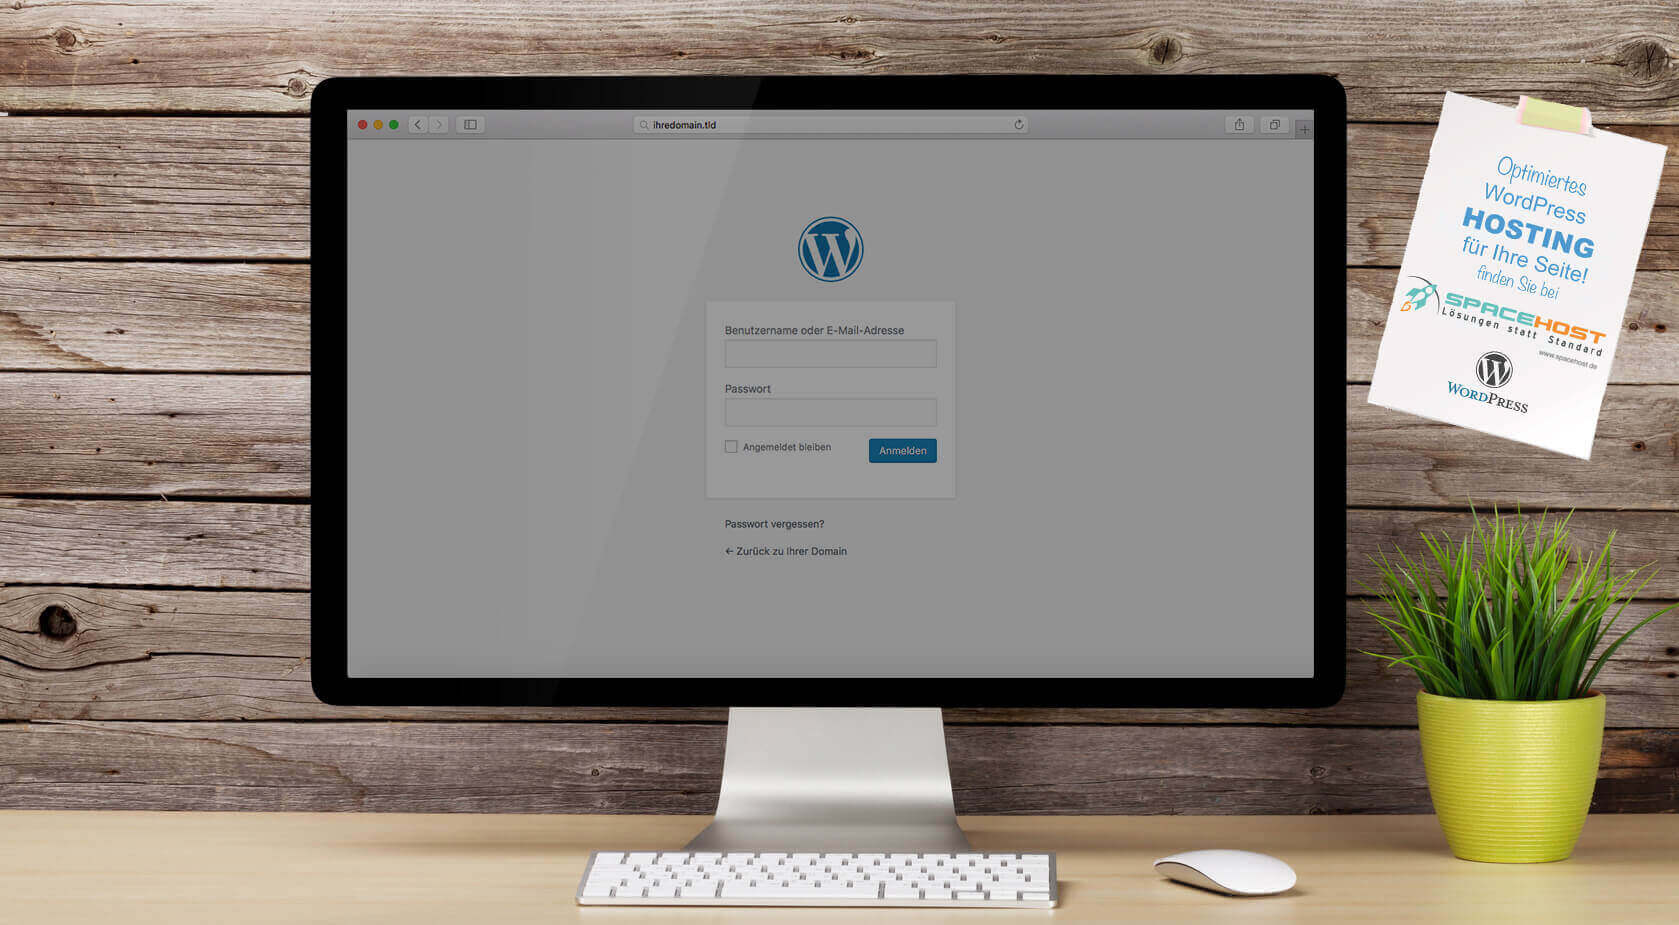 wordpress-hosting-main